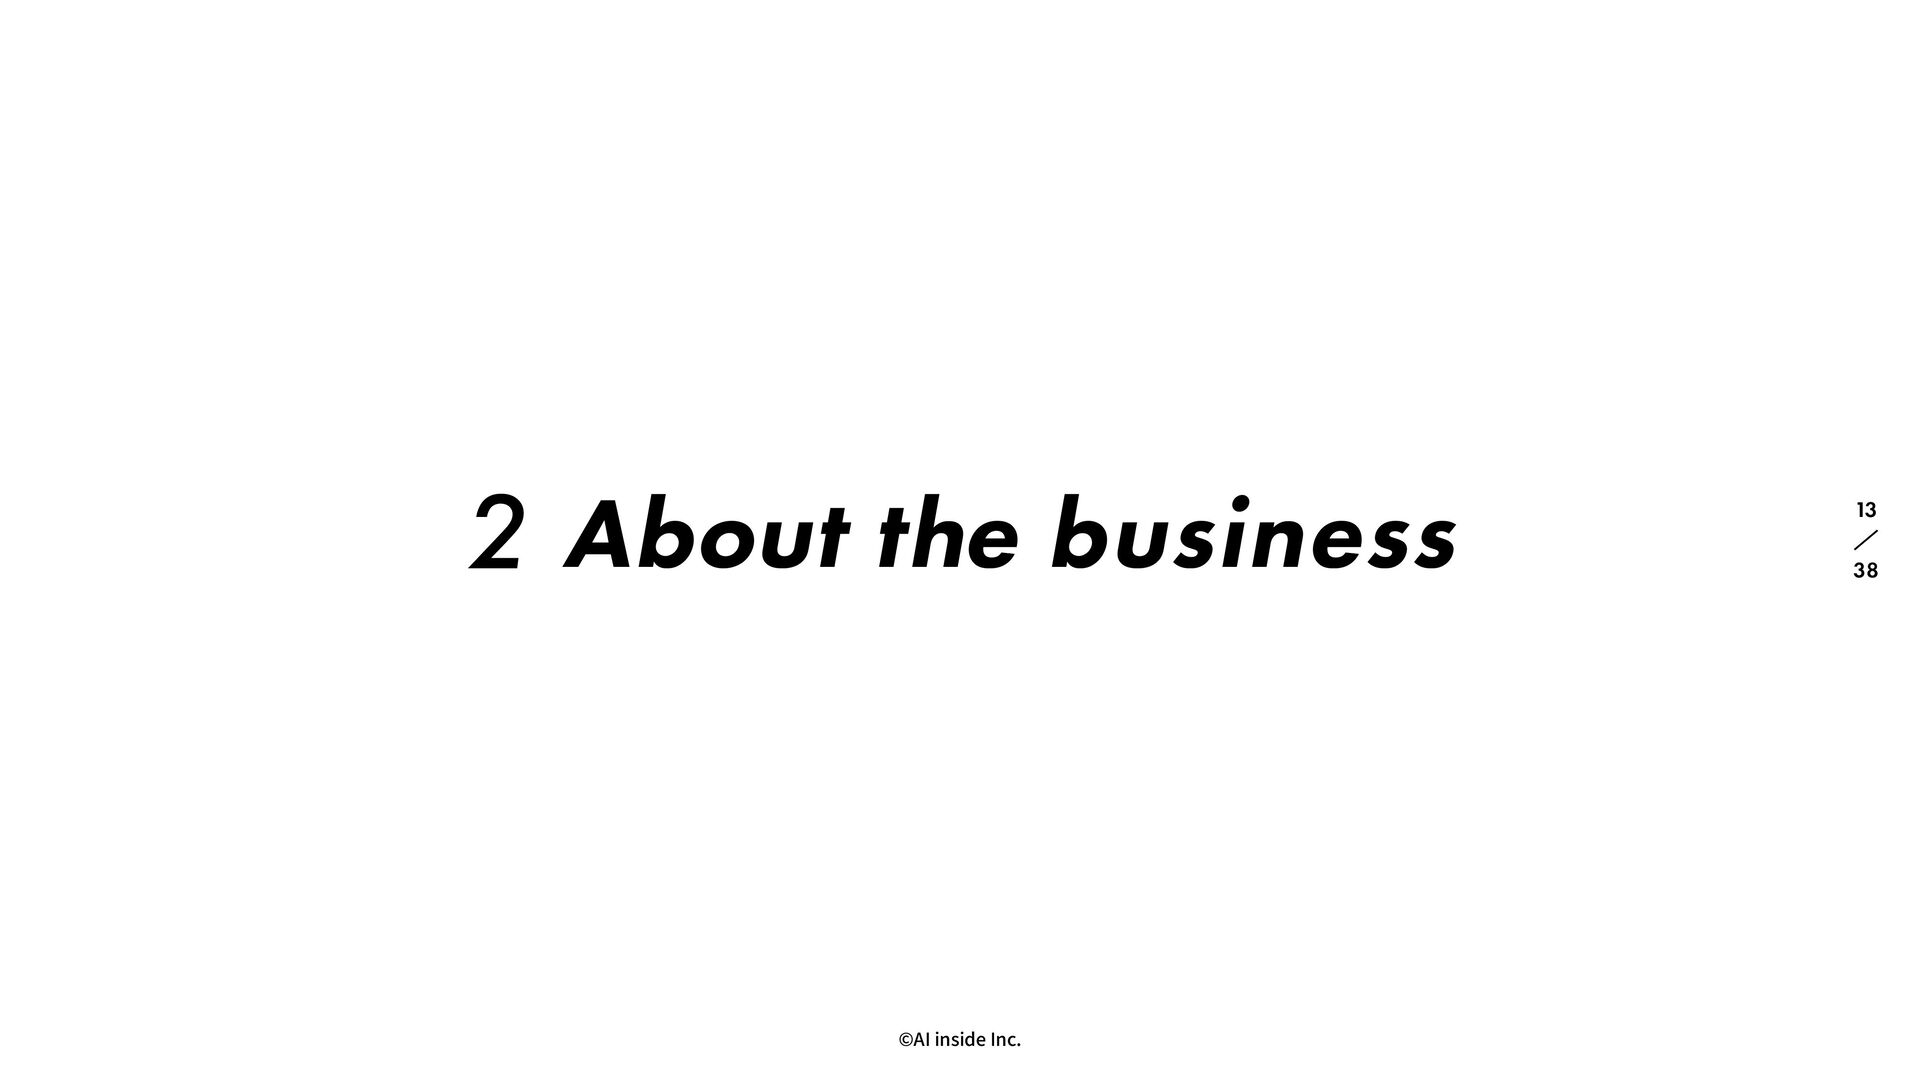 ©AI inside Inc. 41 13 2 About the business